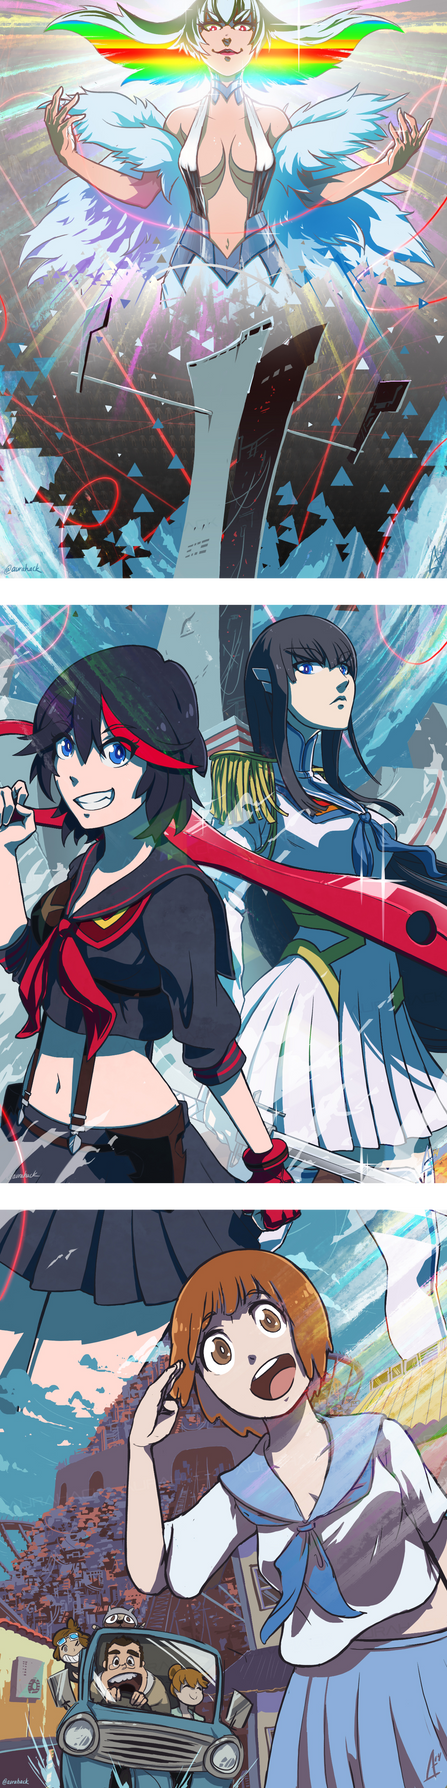 KILL LA KILL by AuraHACK